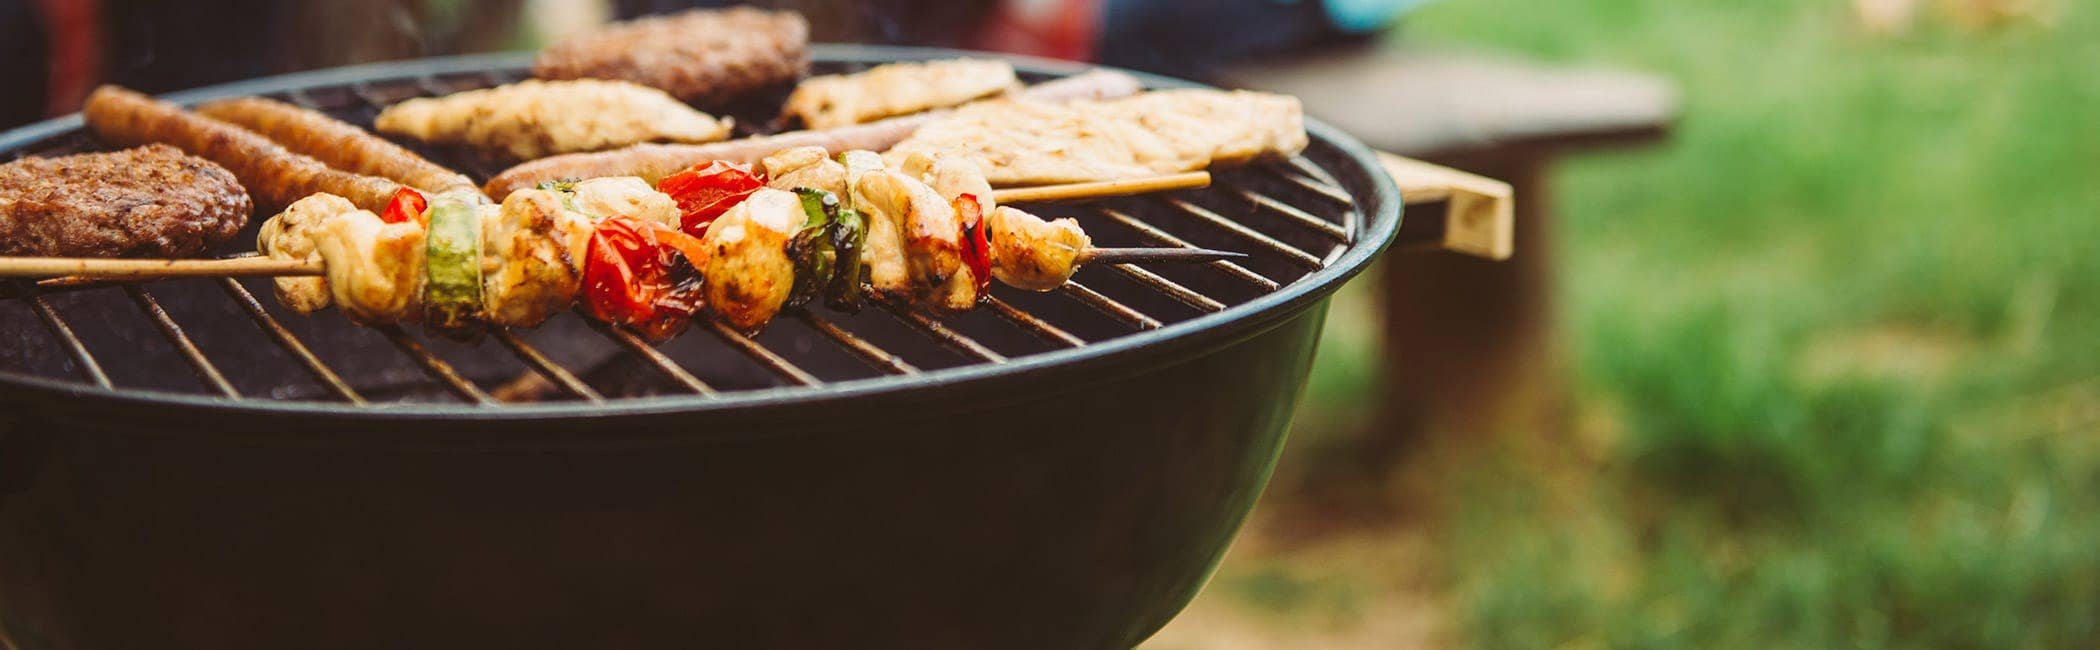 Bbq Checklist Arranging A Fun Safe Successful Barbecue